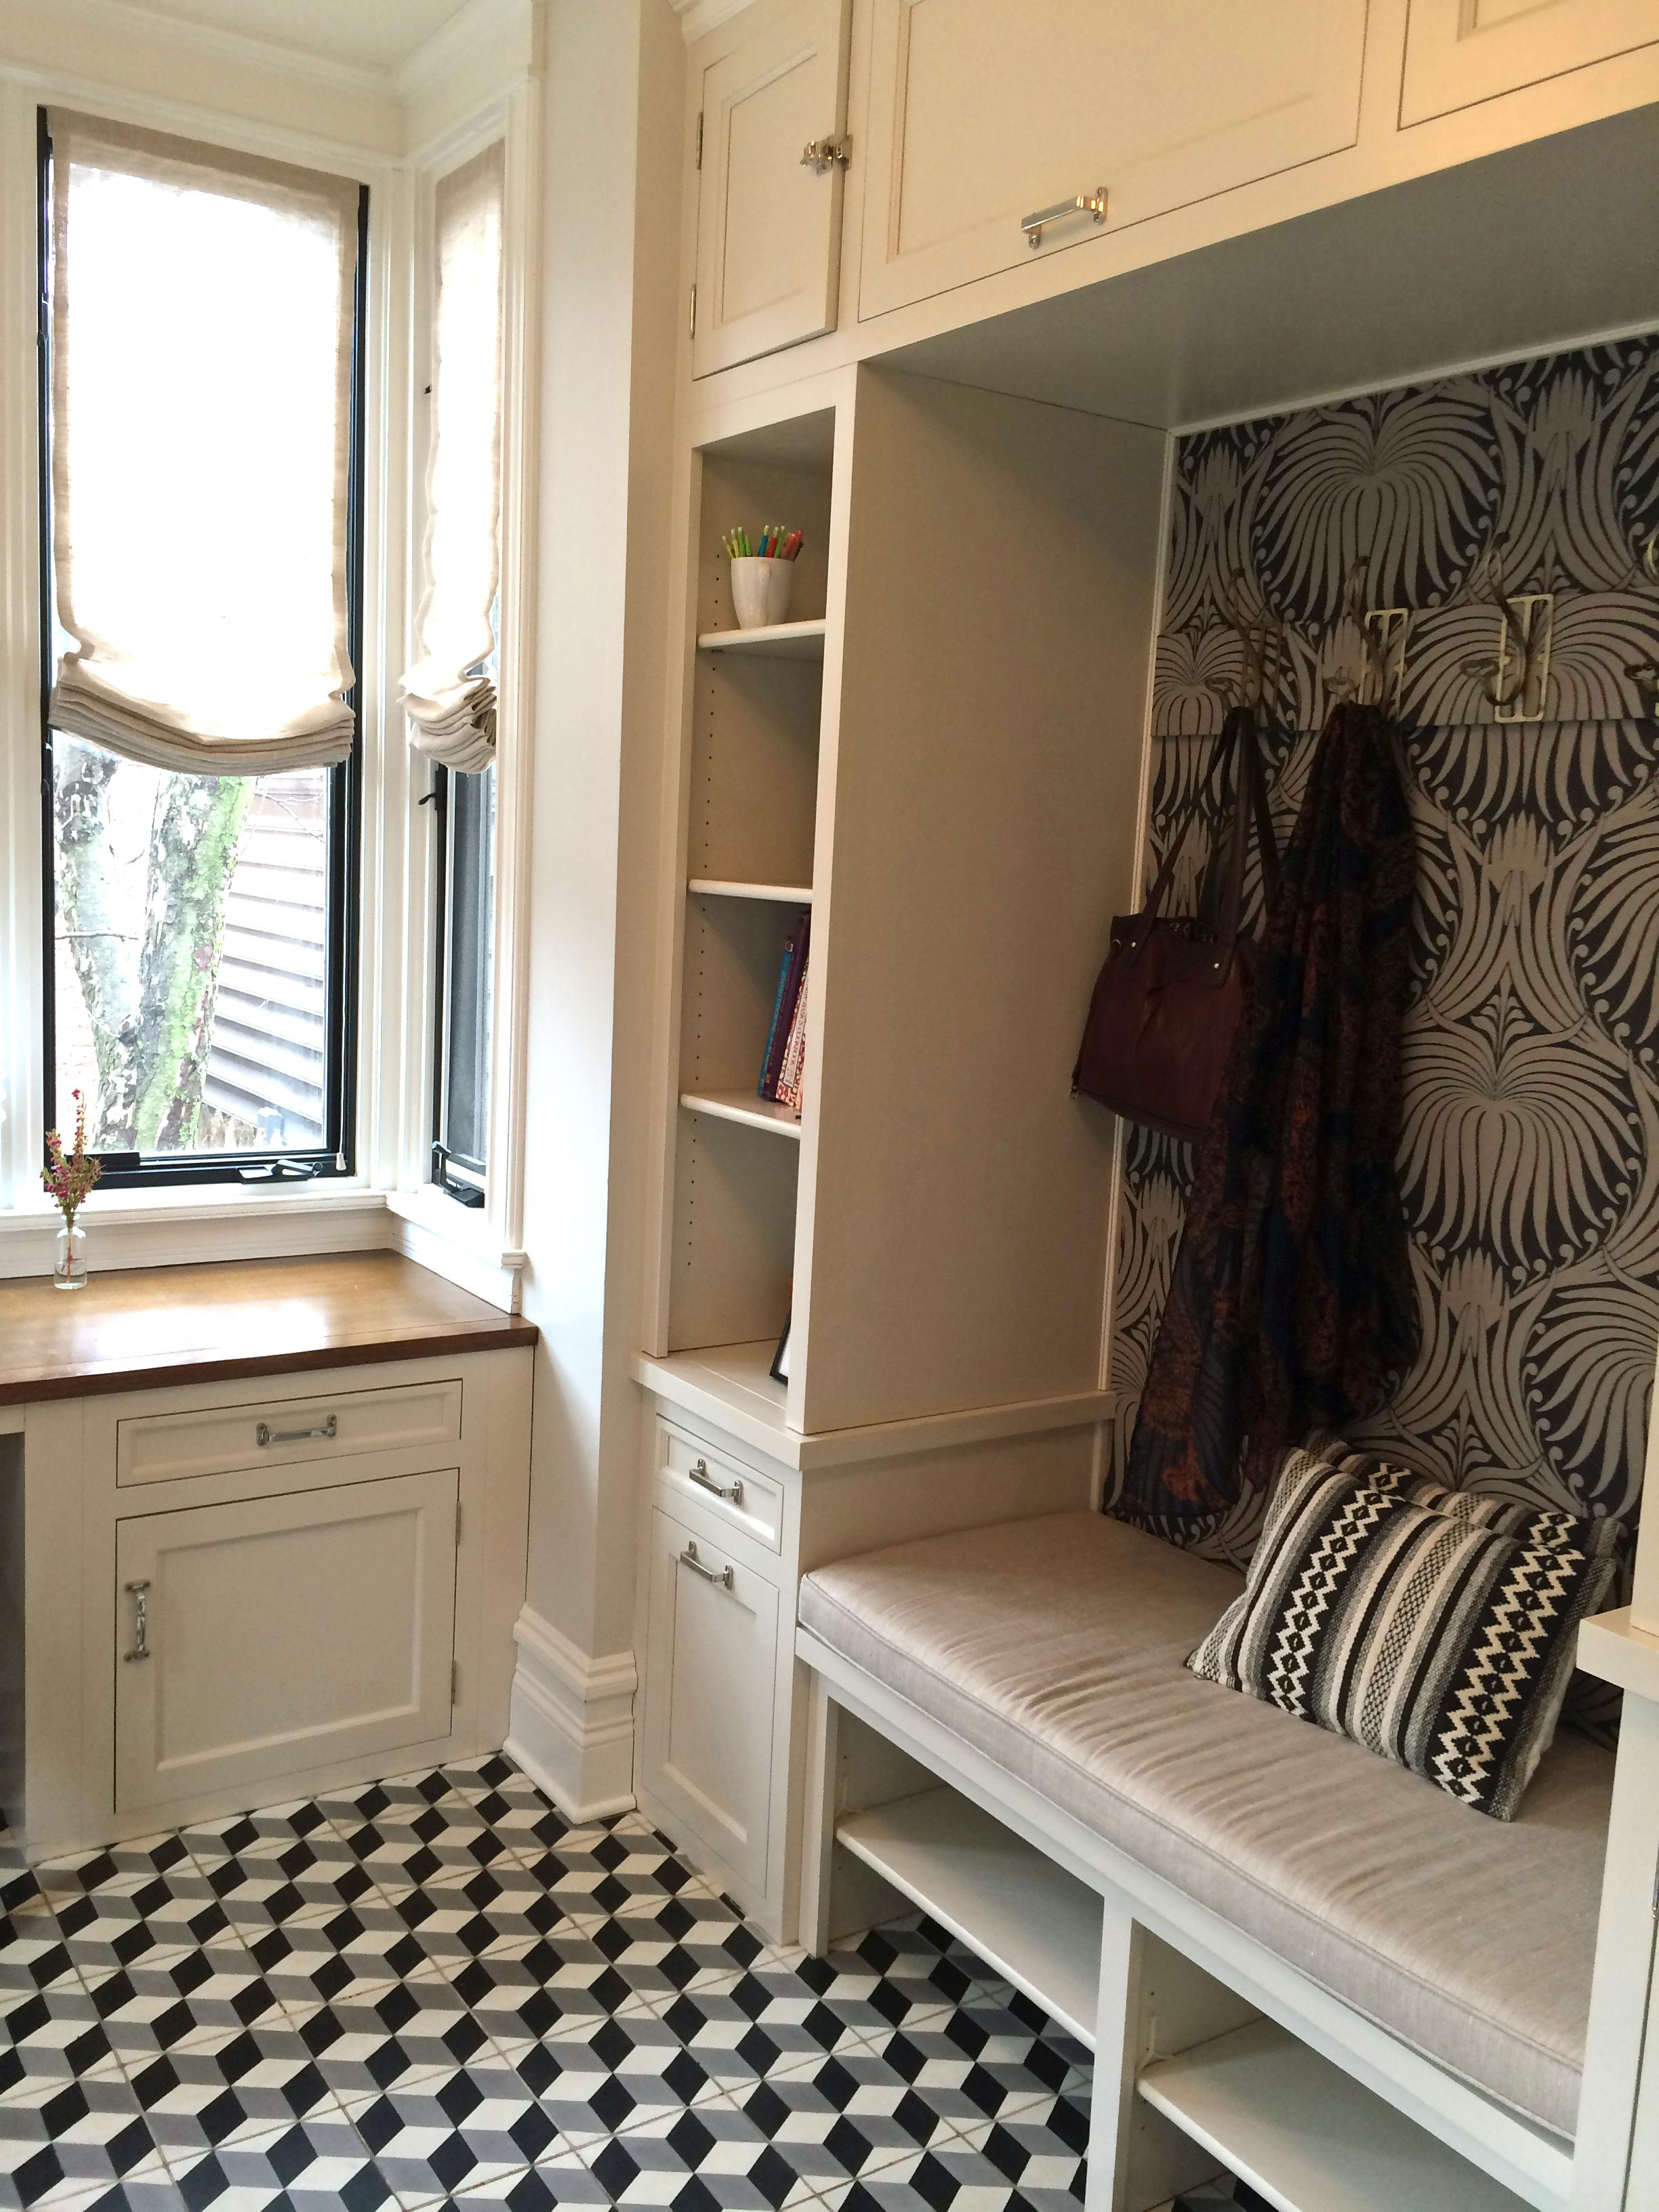 Wellington Chicago Residence Lakeview Home Office Mudroom Modern Eclectic  Transitional MidCentury Modern By KitchenLab Design Rebekah